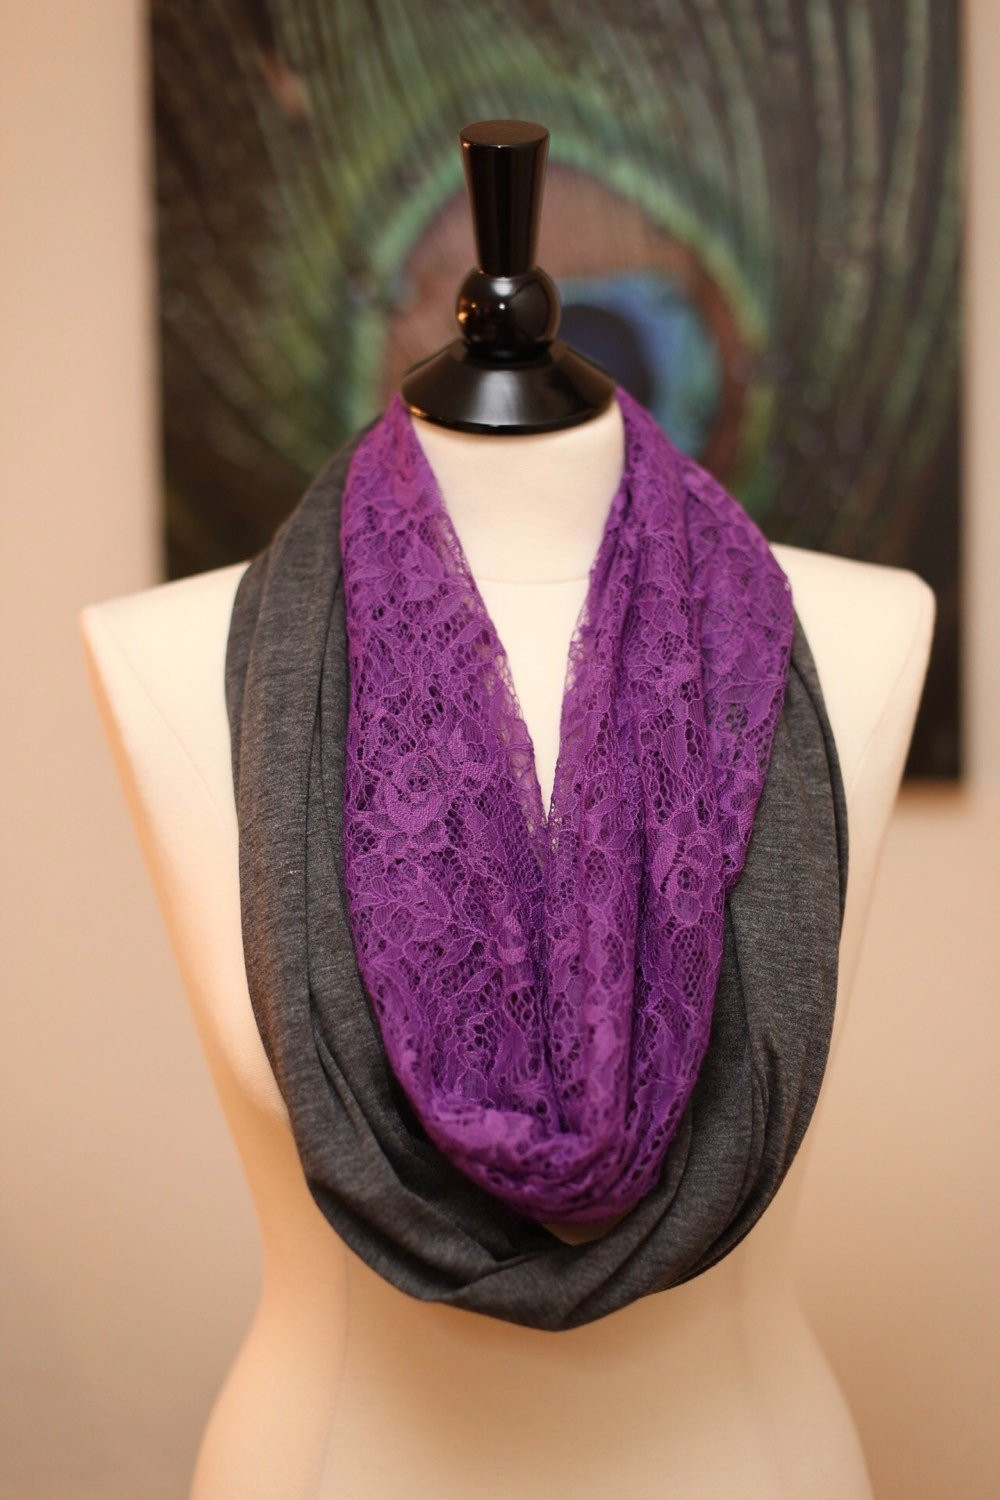 Luxury Infinity Scarf Jersey Knit and Lace Lace Infinity Scarf Of Charming 45 Ideas Lace Infinity Scarf